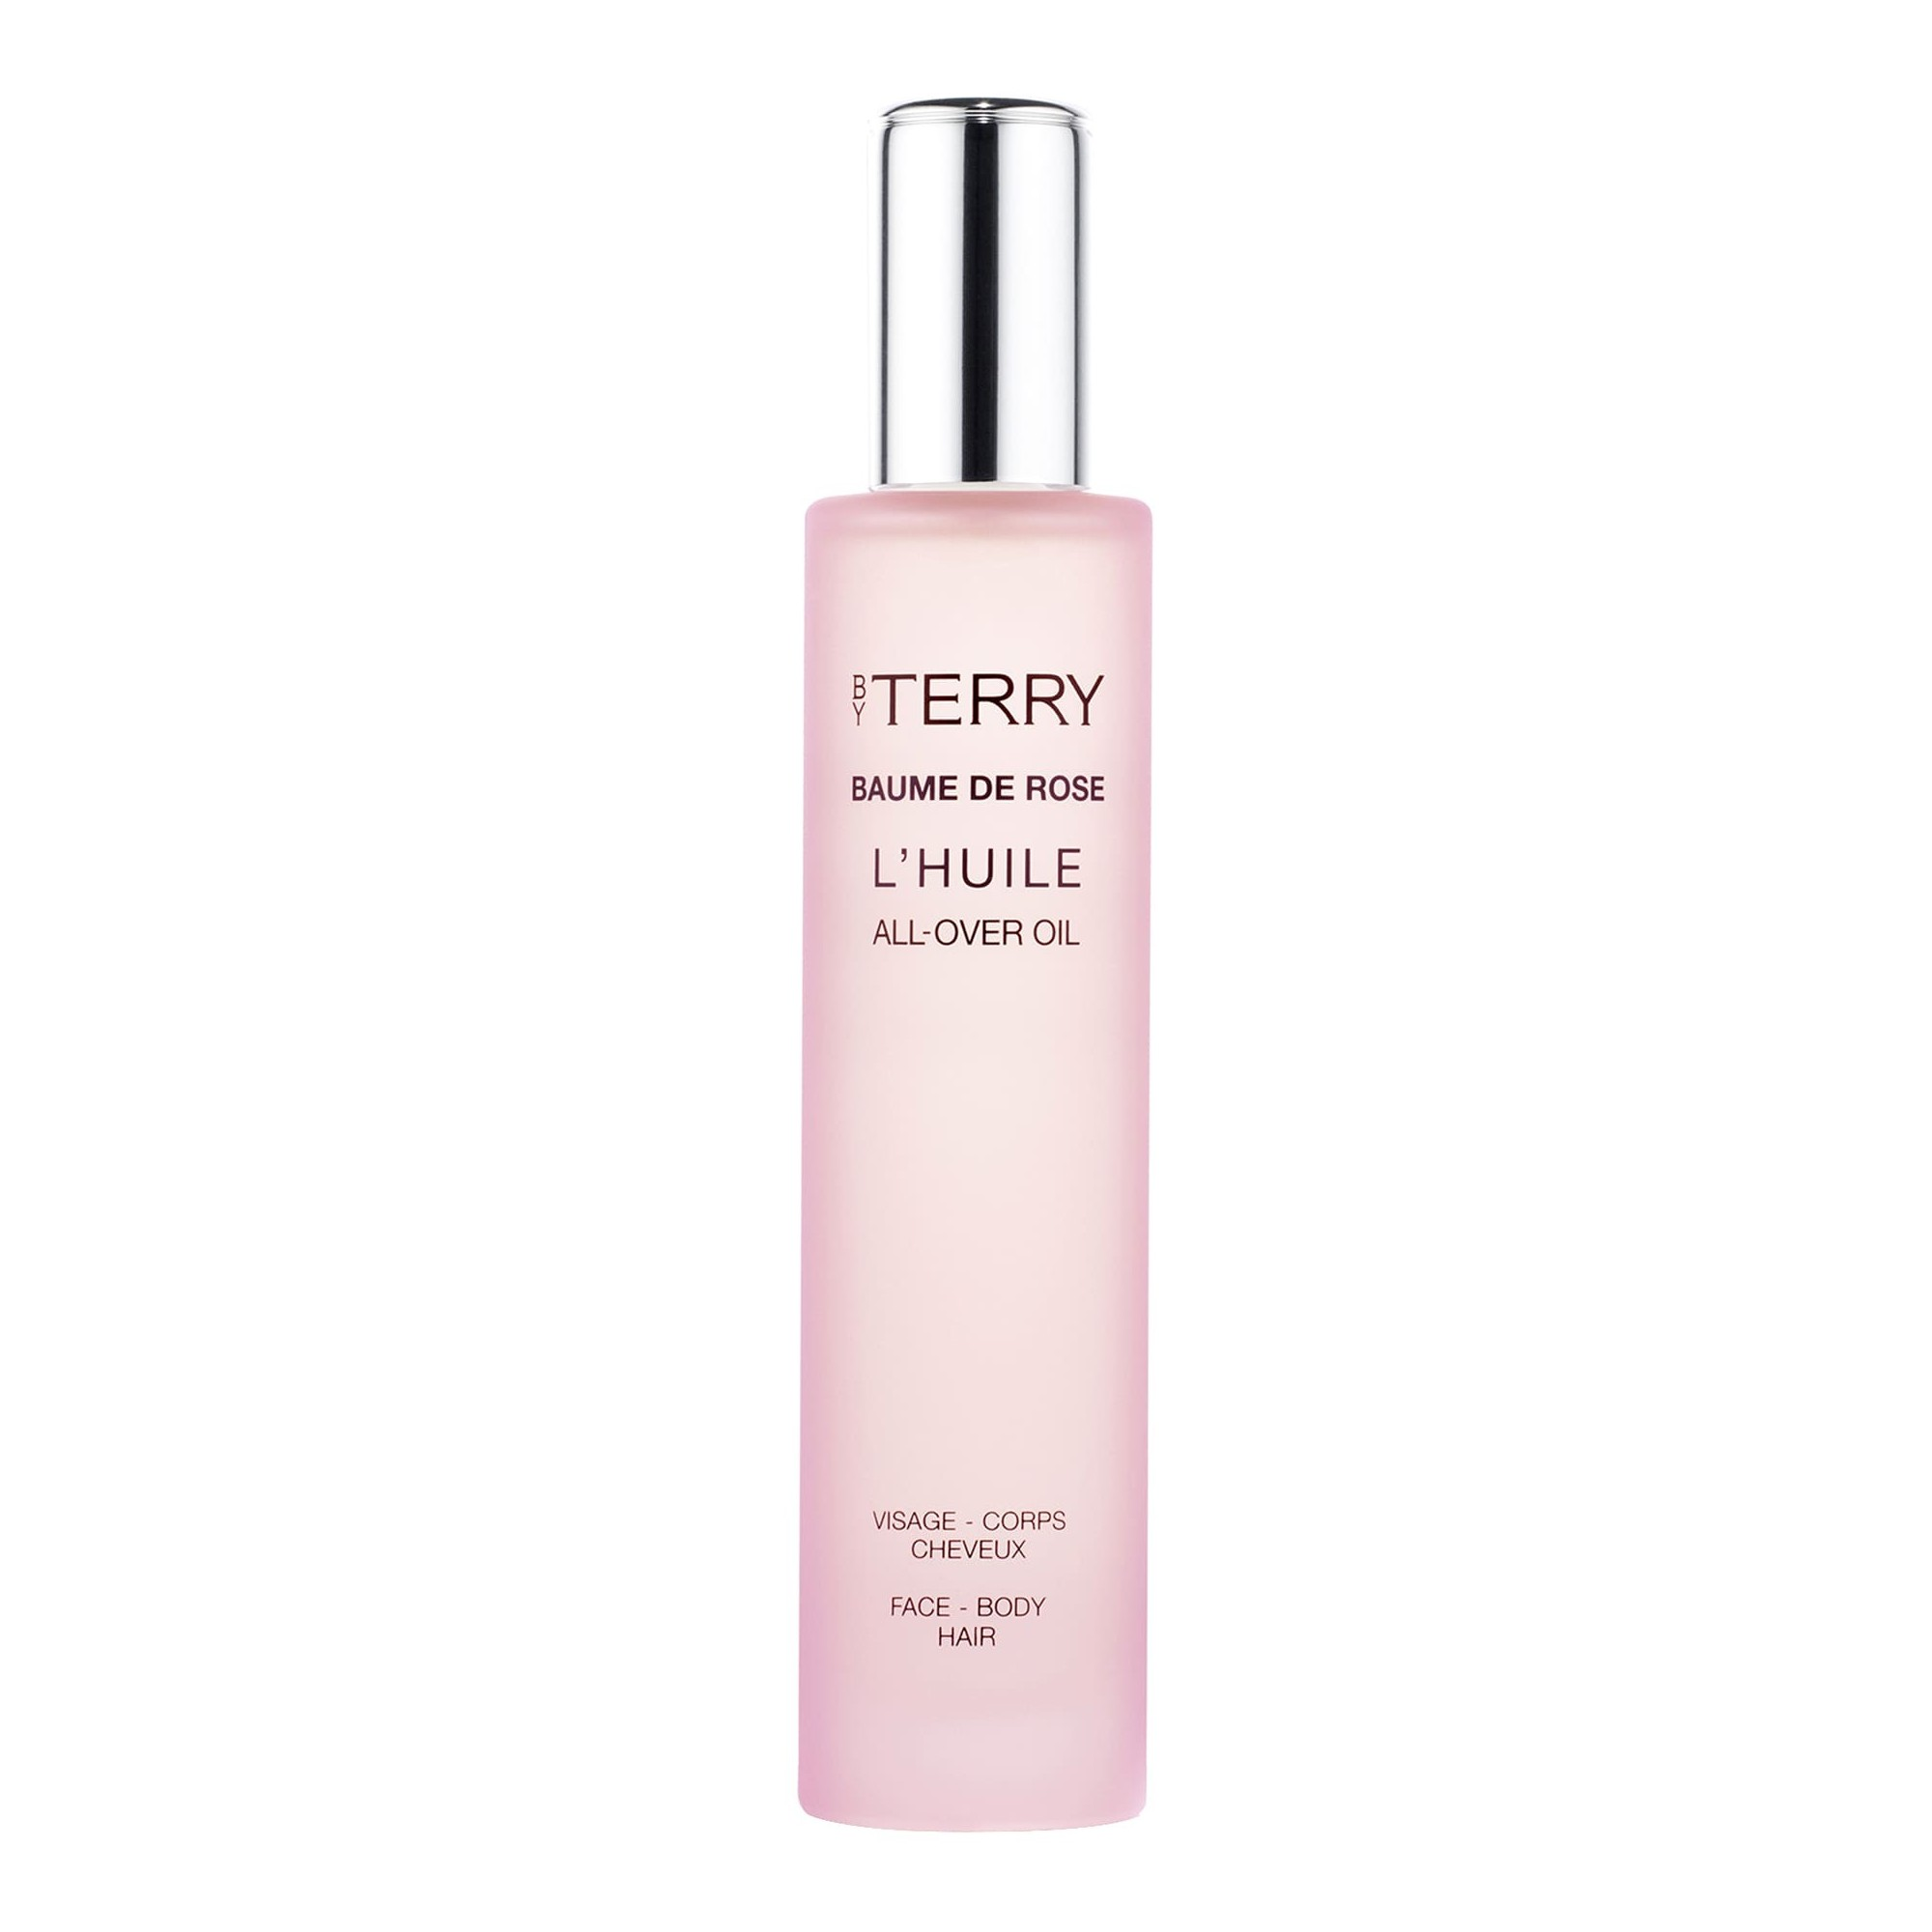 By Terry Baume de Rose All-Over Oil